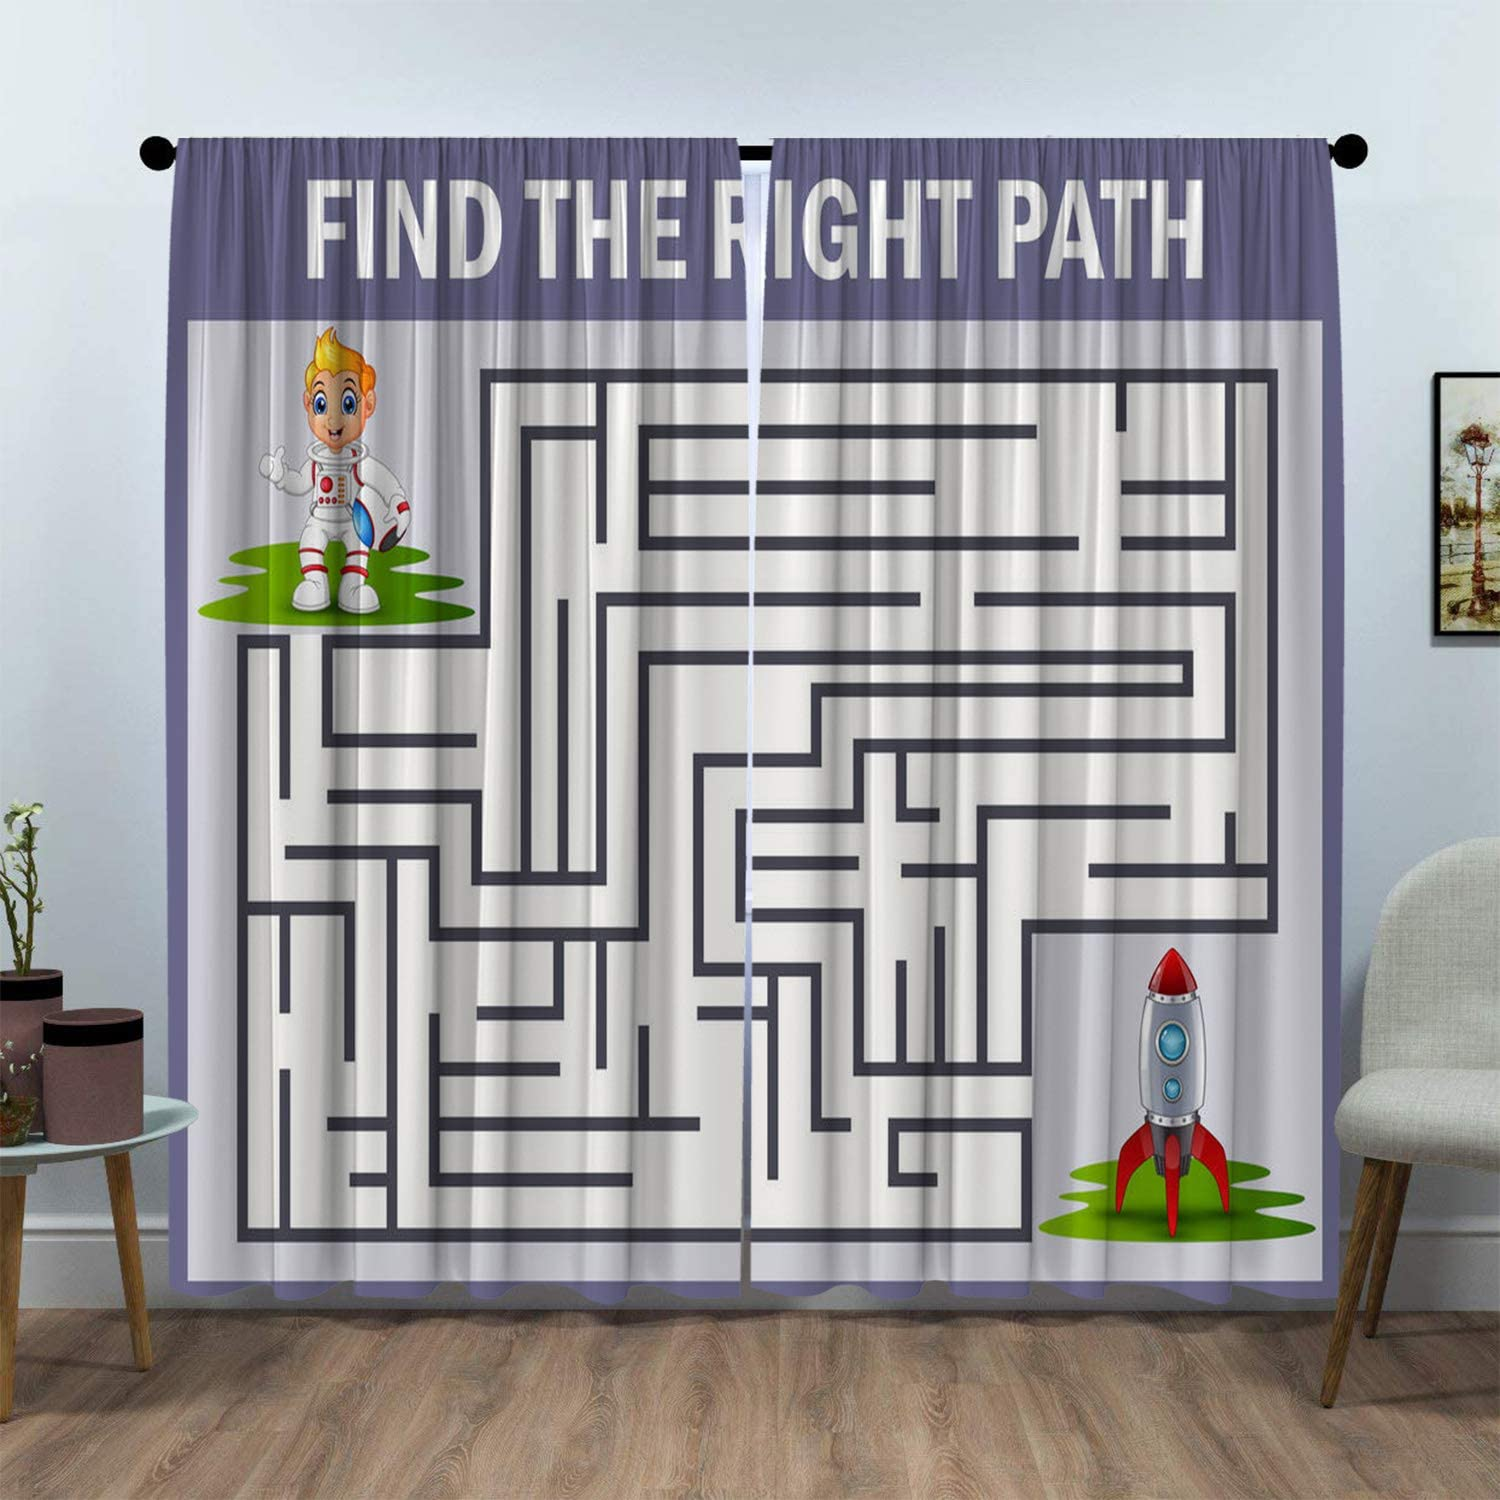 SeptSonne Kids Room Window Curtain Panels Drapes Vector of Maze Game Find Astronaut Way to Rocket for Kids Room curtians Artwork Customized Curtains W72 xL84